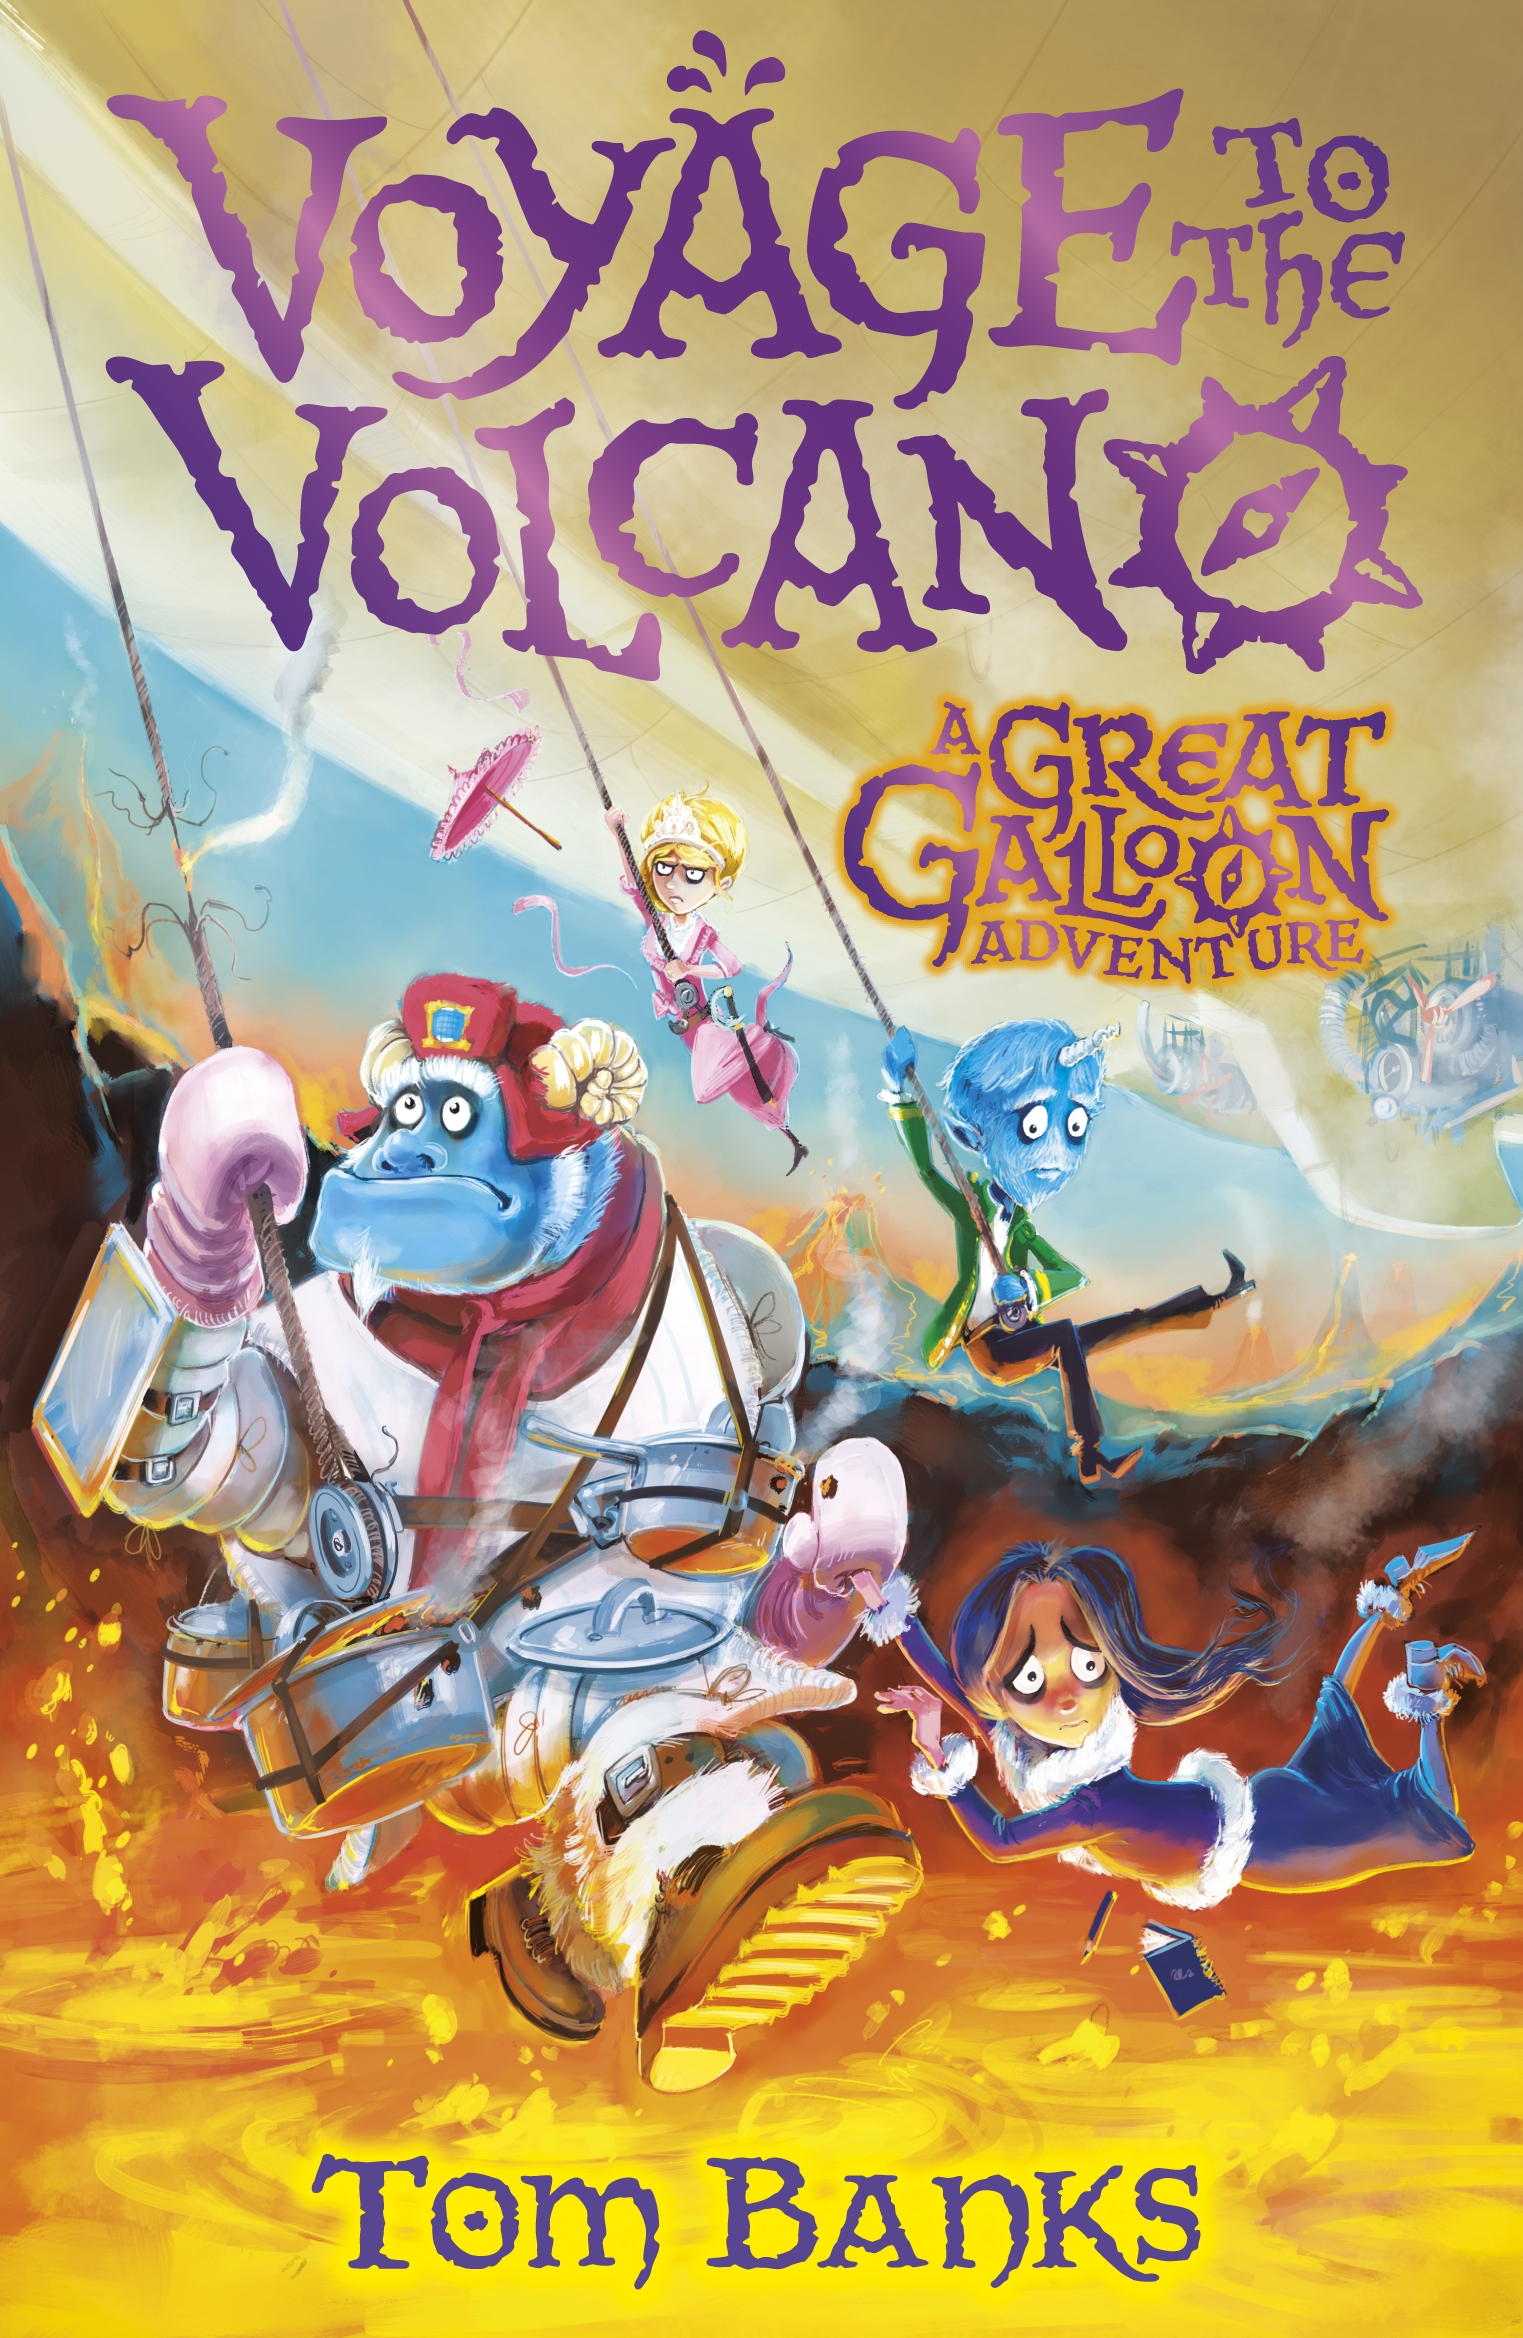 Voyage to the Volcano by Tom Banks